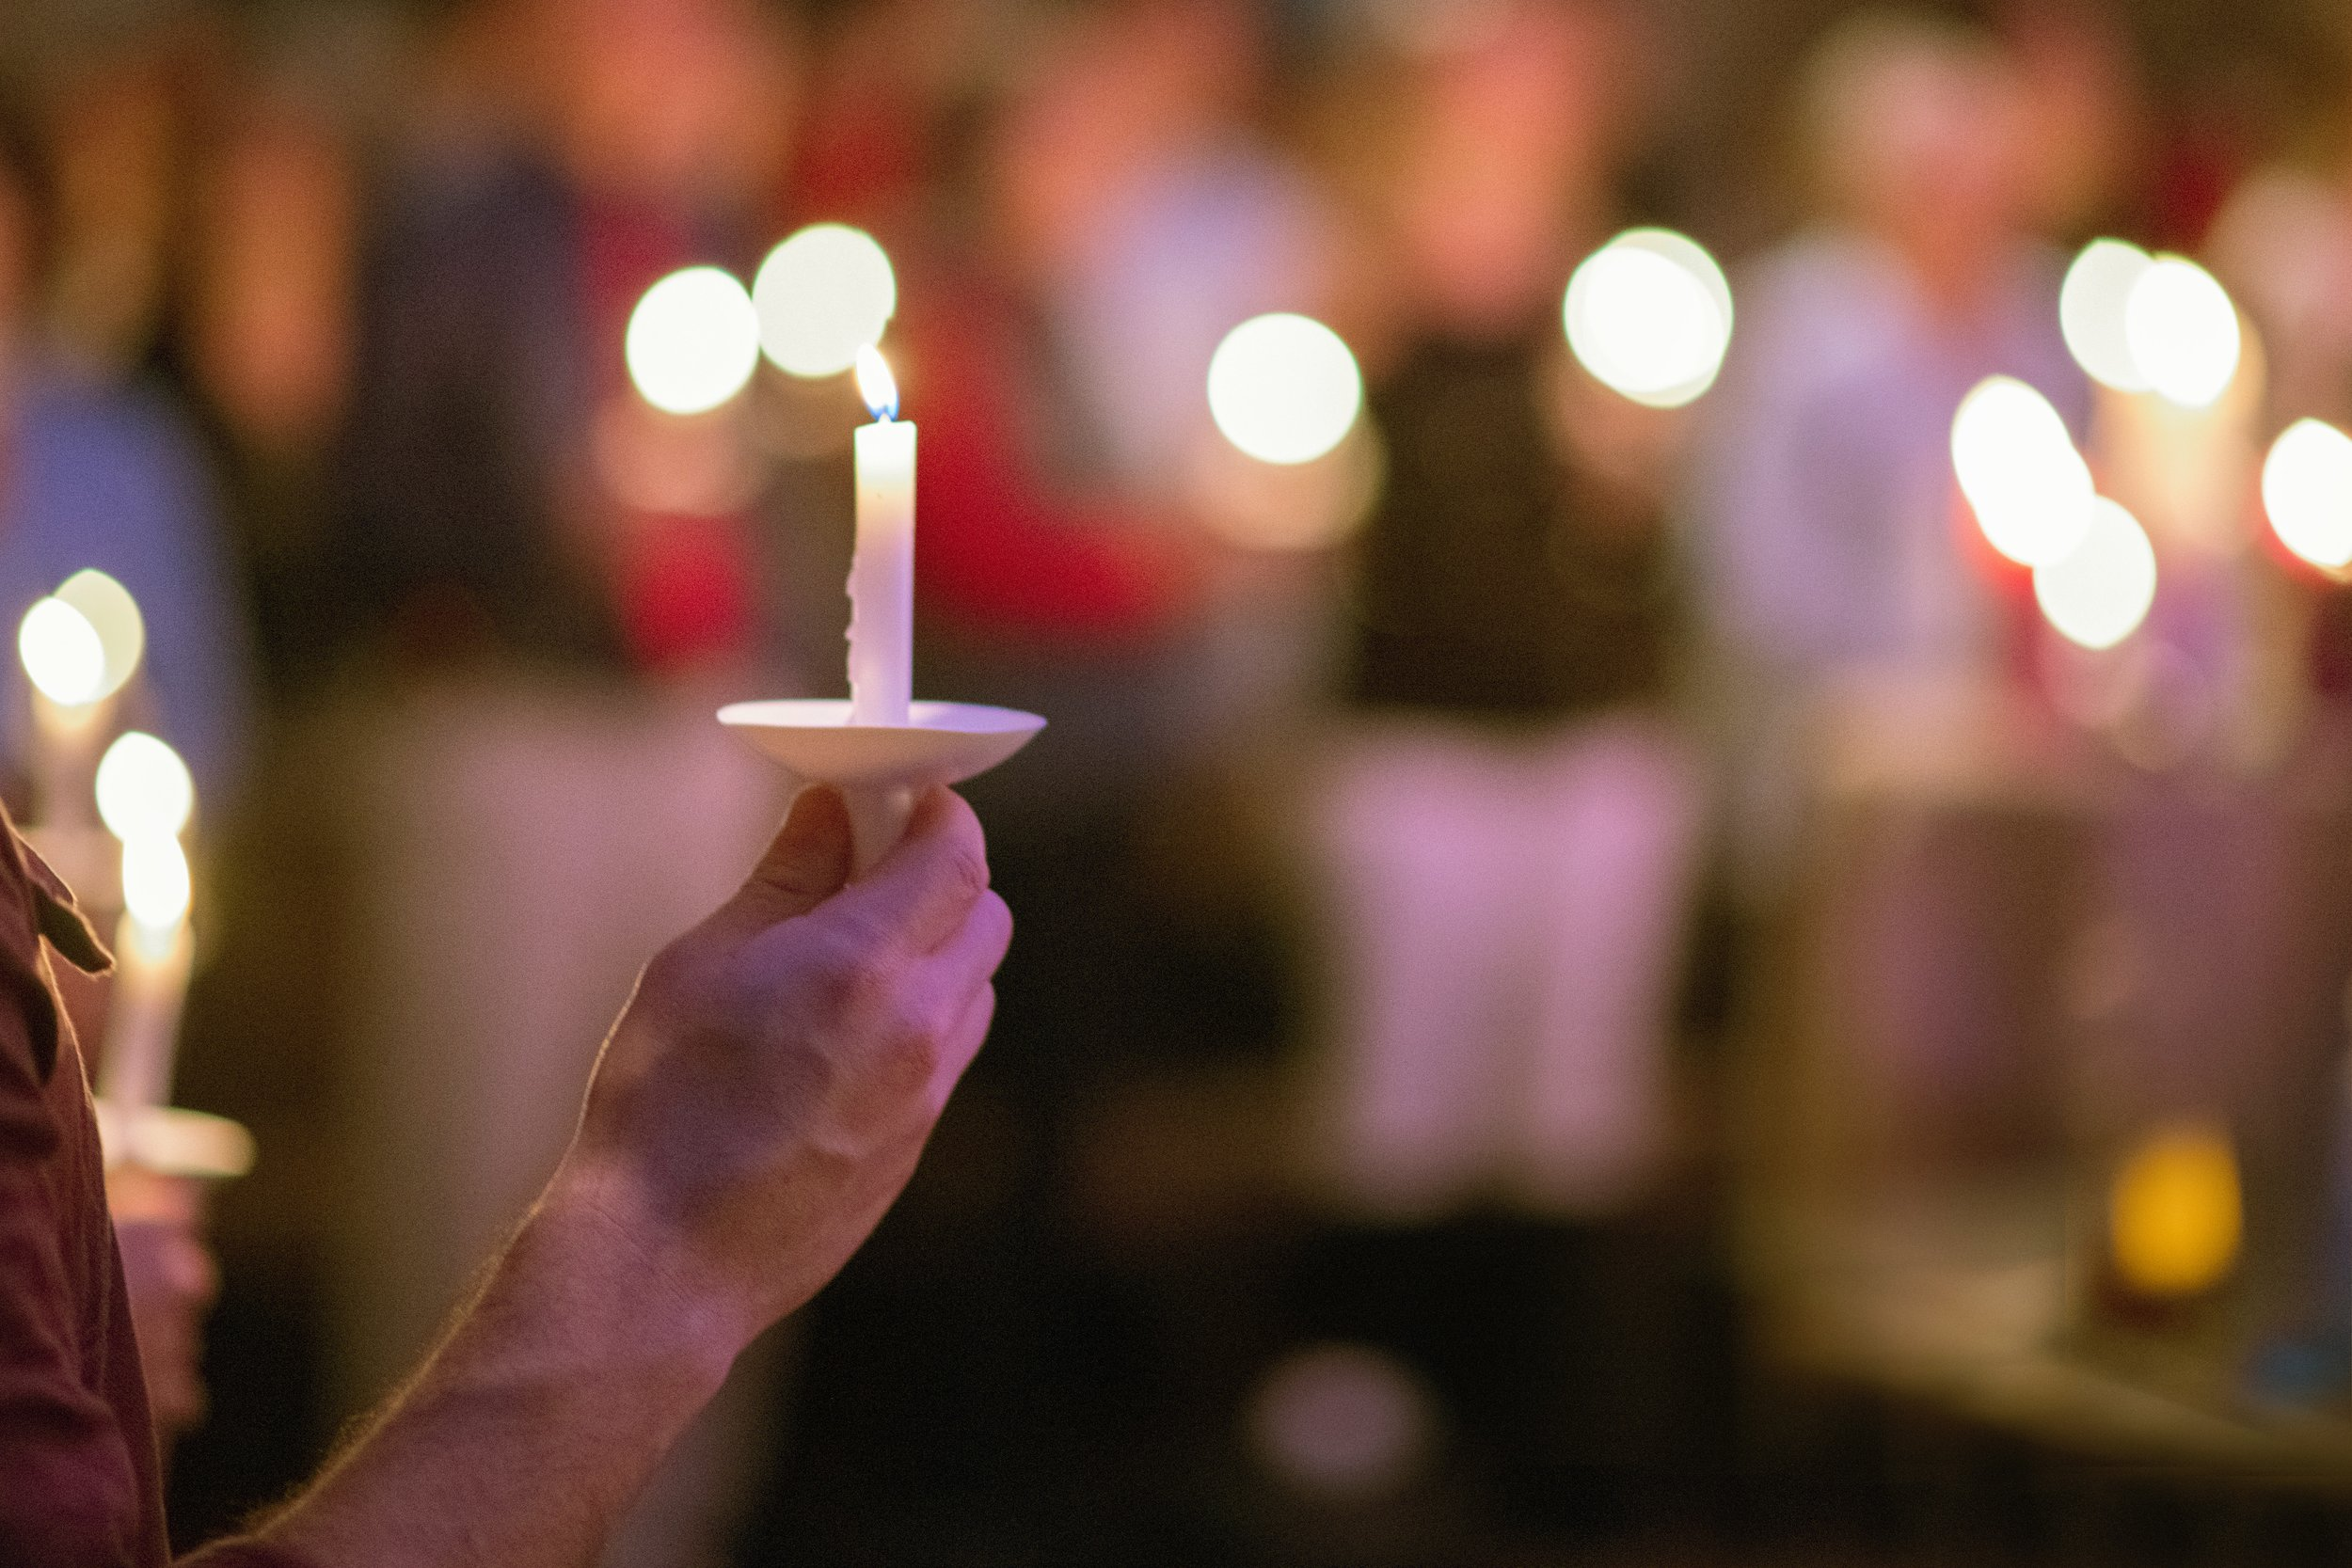 """Silent Night, Holy Night"" turns 200! At our 7 pm Christmas Eve service, Monday, Dec. 24, 2018, we will hear this beloved song's history, and the service will conclude as we sing it and pass the light of Christ throughout the sanctuary, one candle at a time."